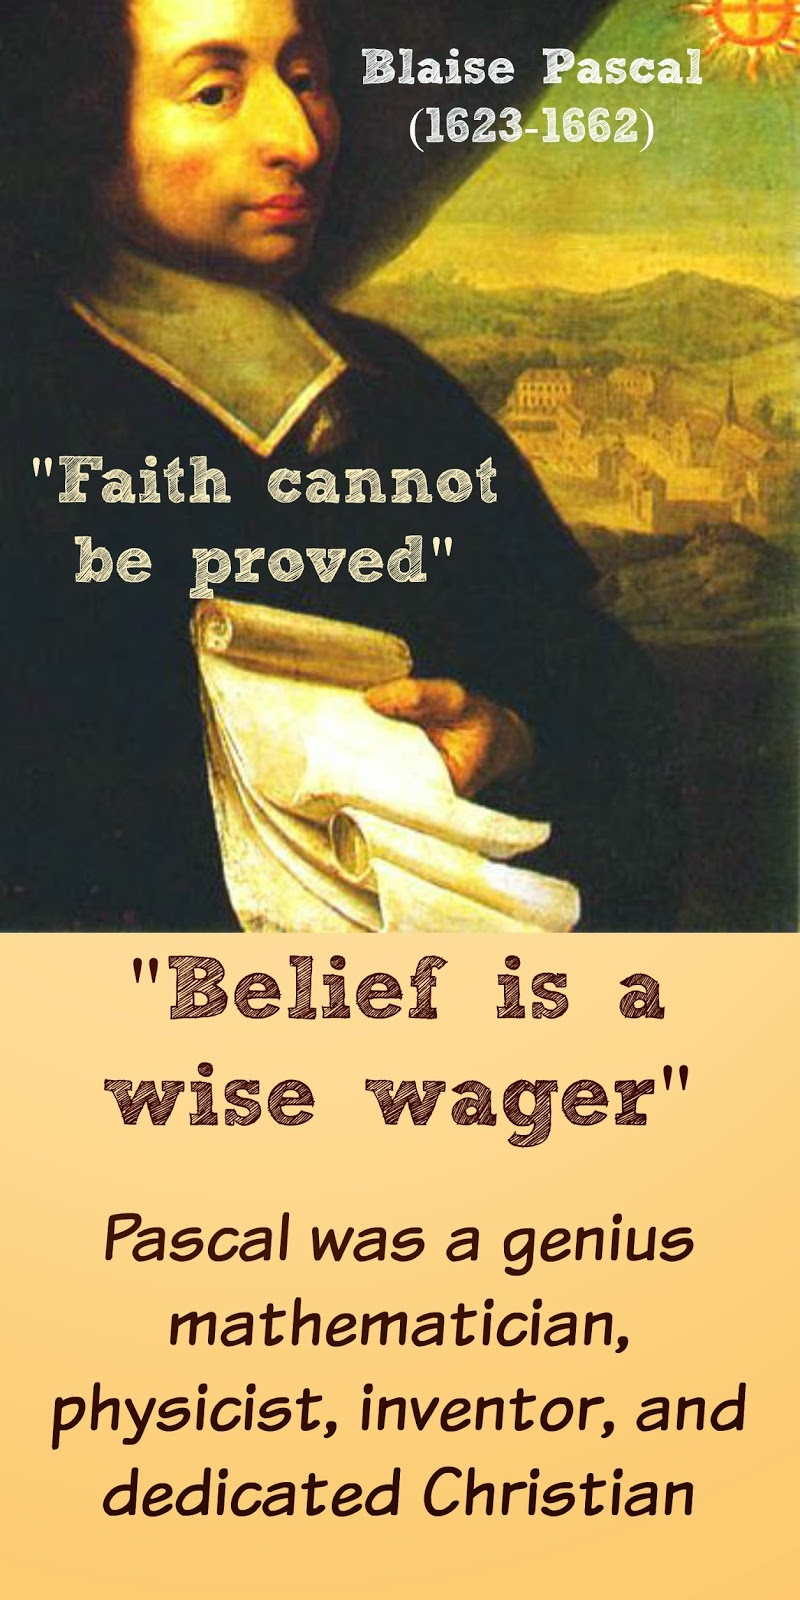 Blaise Pascal, Pascal's Wager